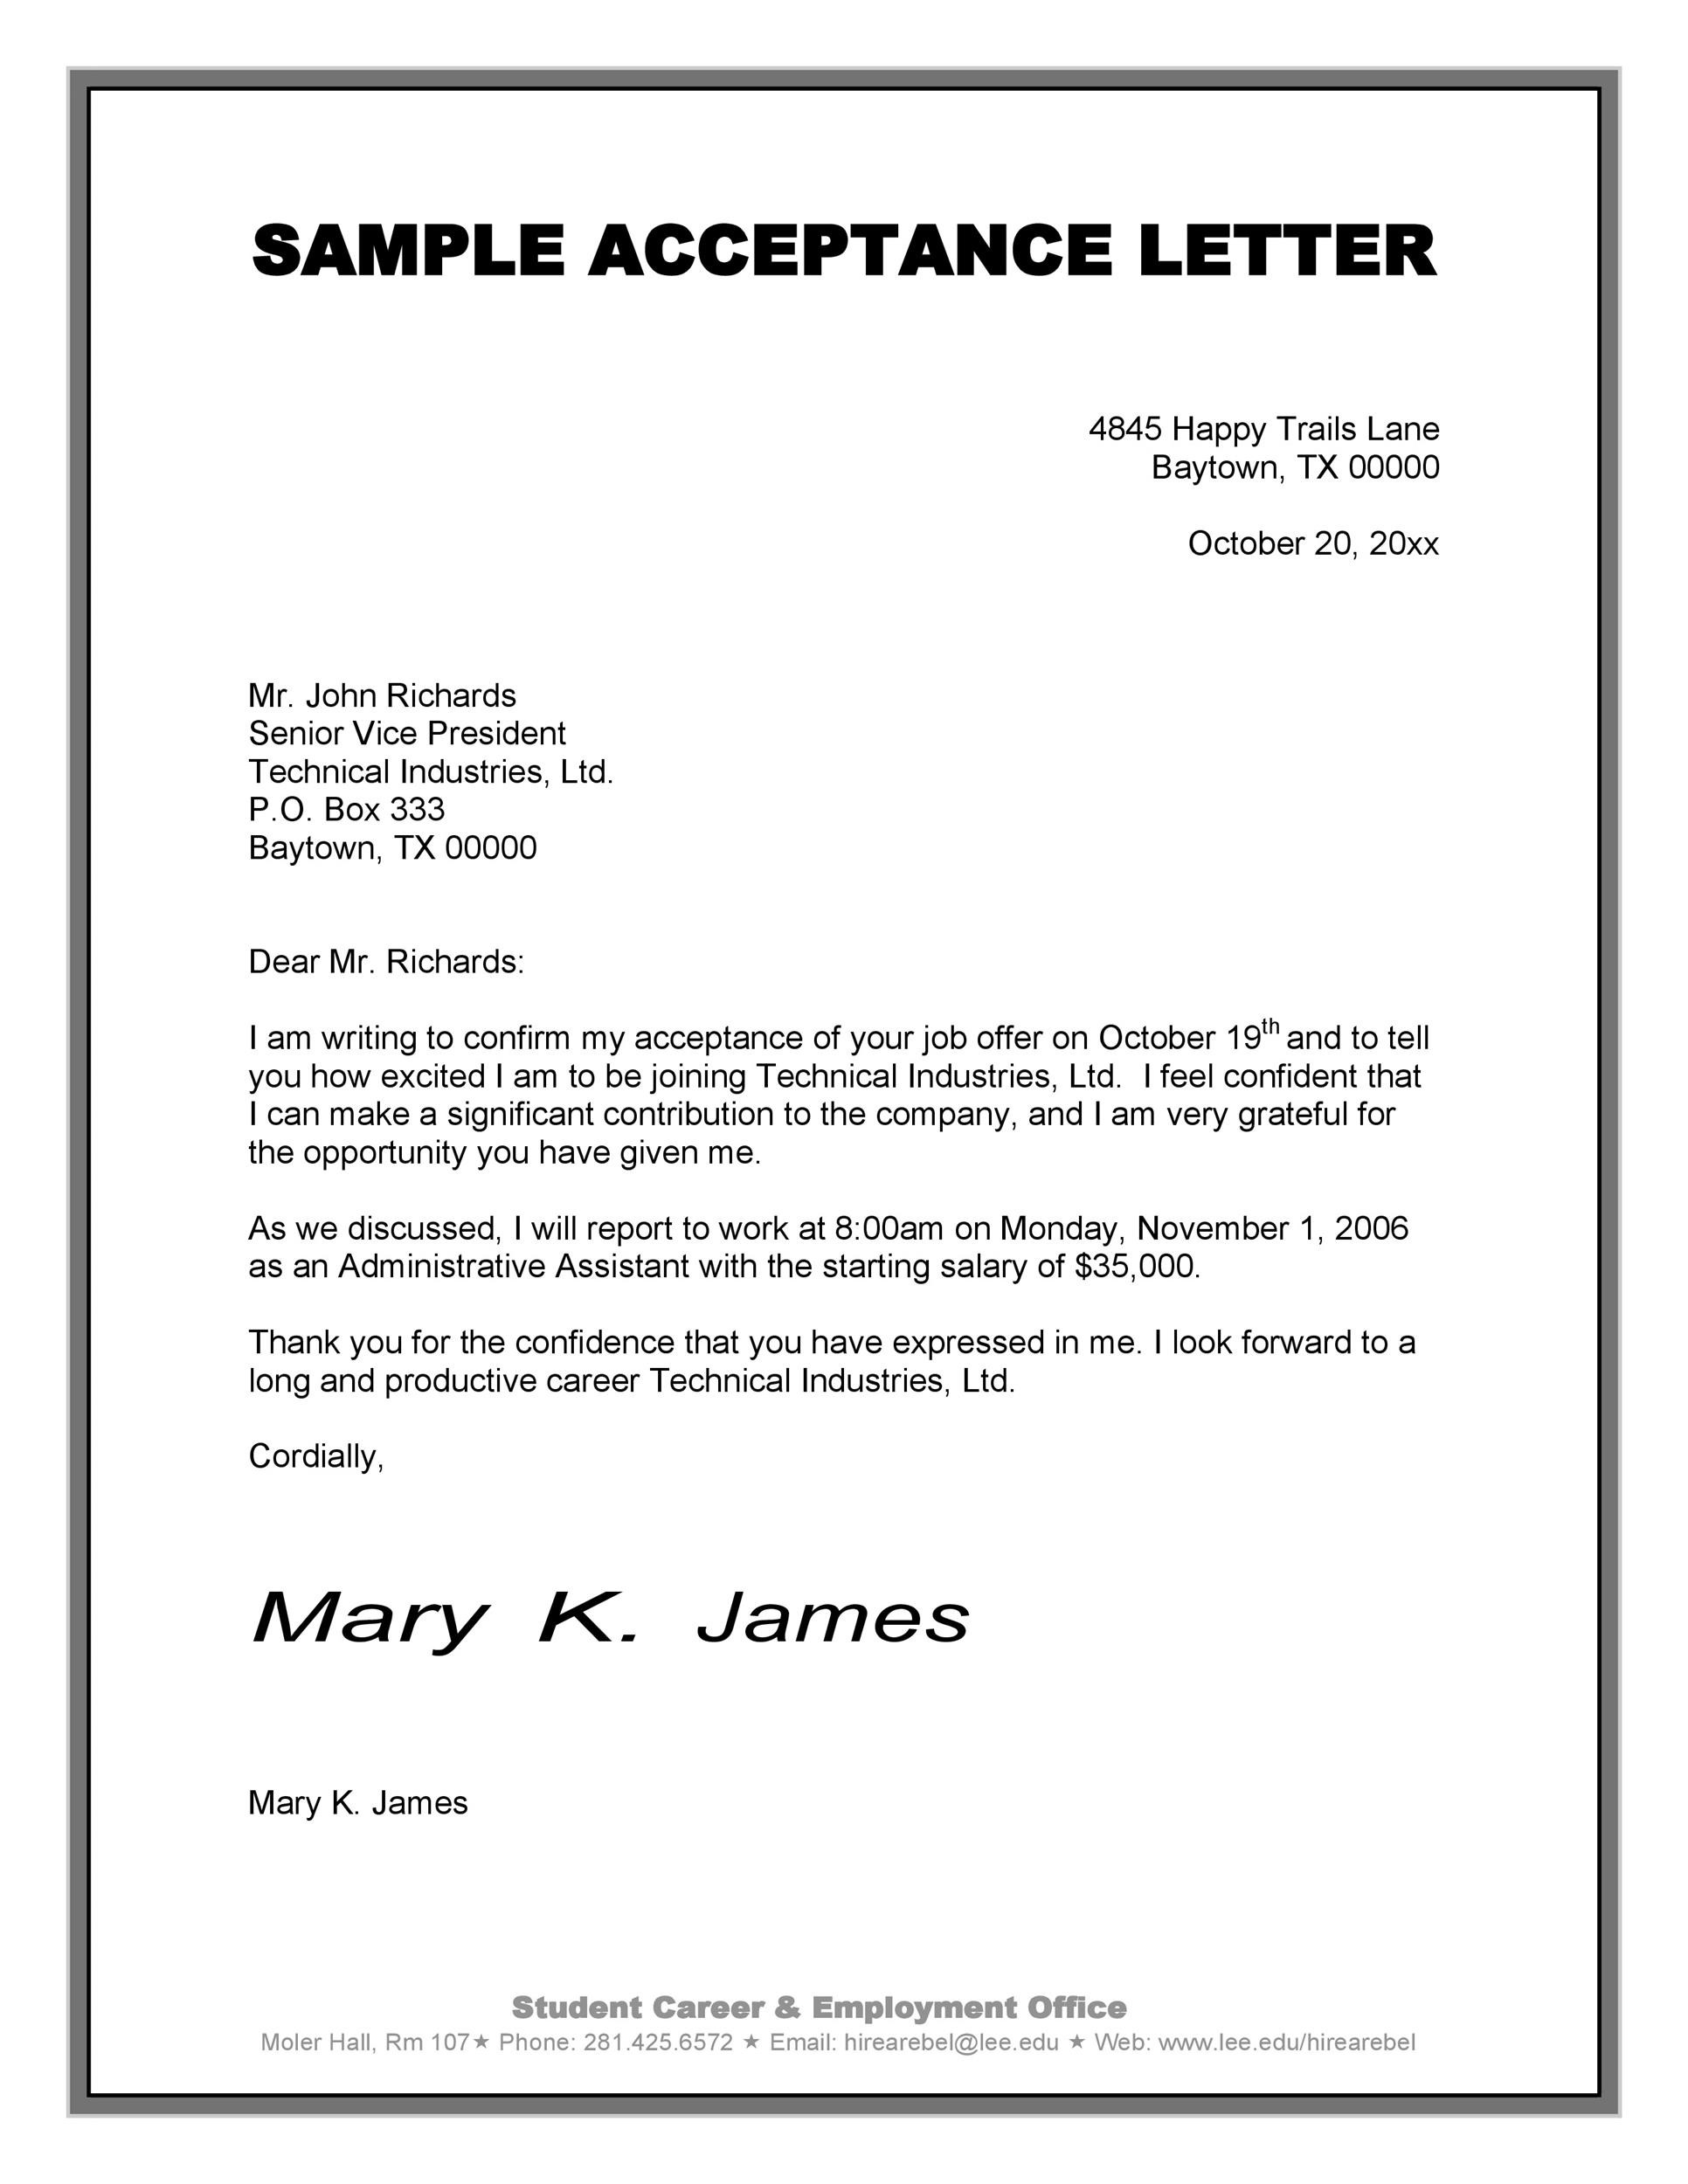 job offer acceptance letter 40 professional offer acceptance letter amp email 22639